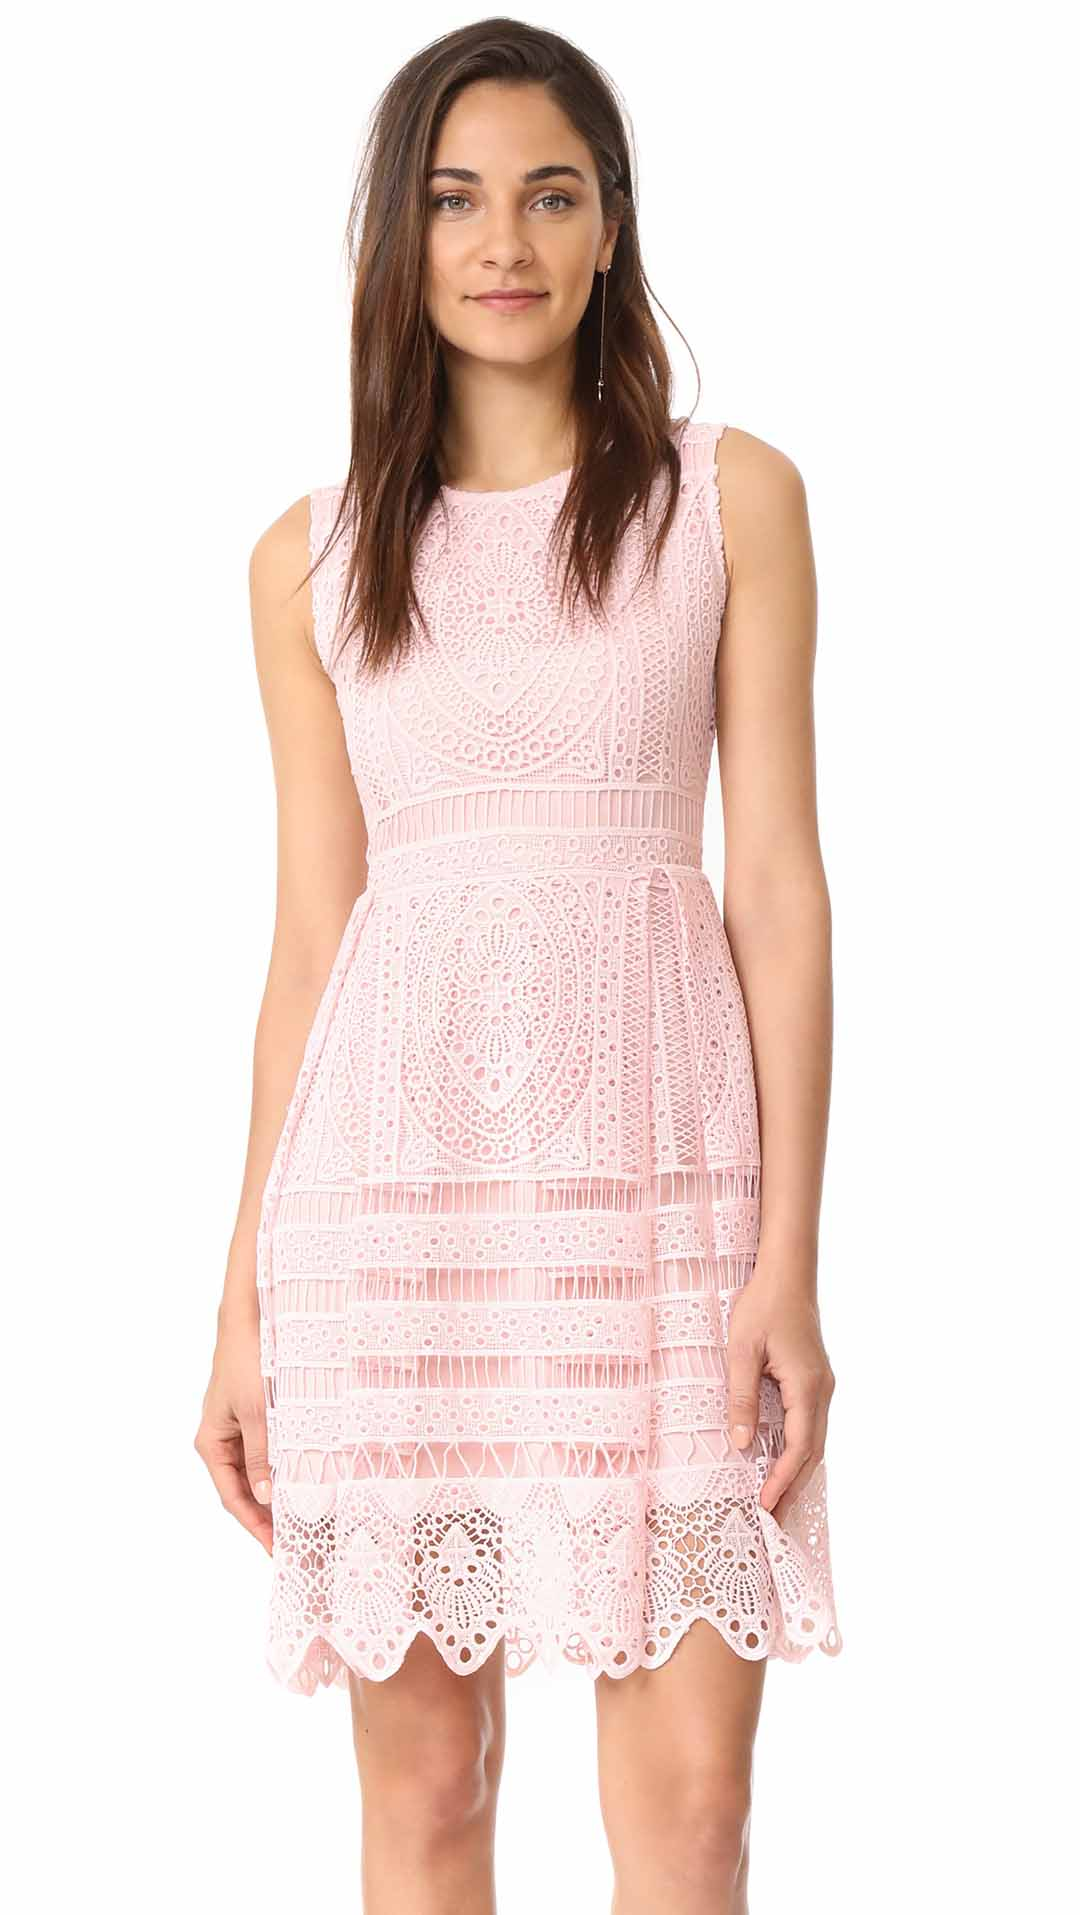 Trendy Fit And Flare Dresses For Spring Summer